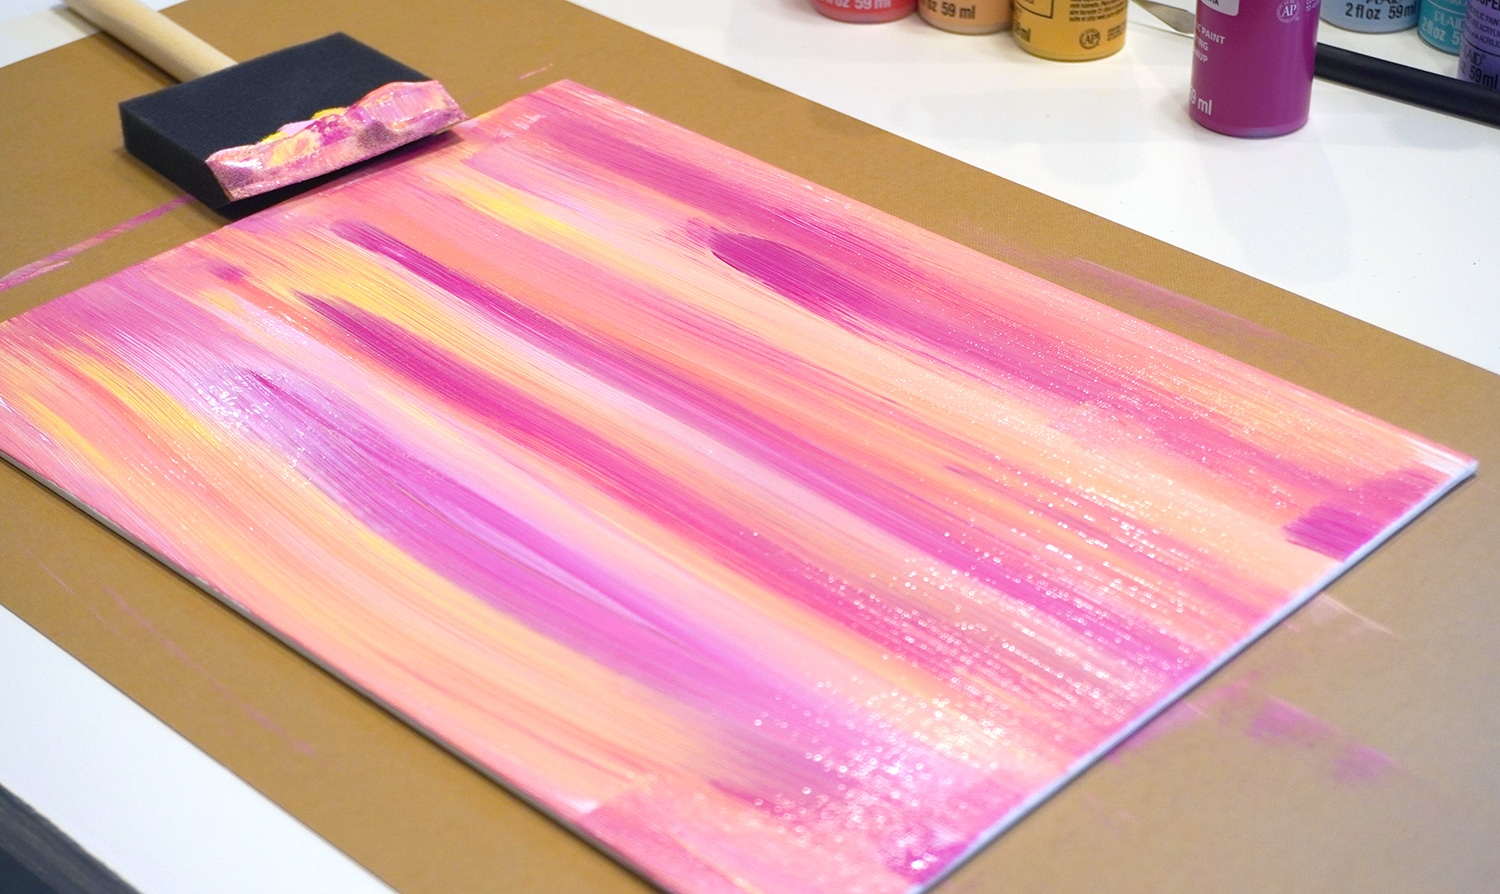 Pink, orange, yellow, and coral paint streaks on canvas with sponge brush